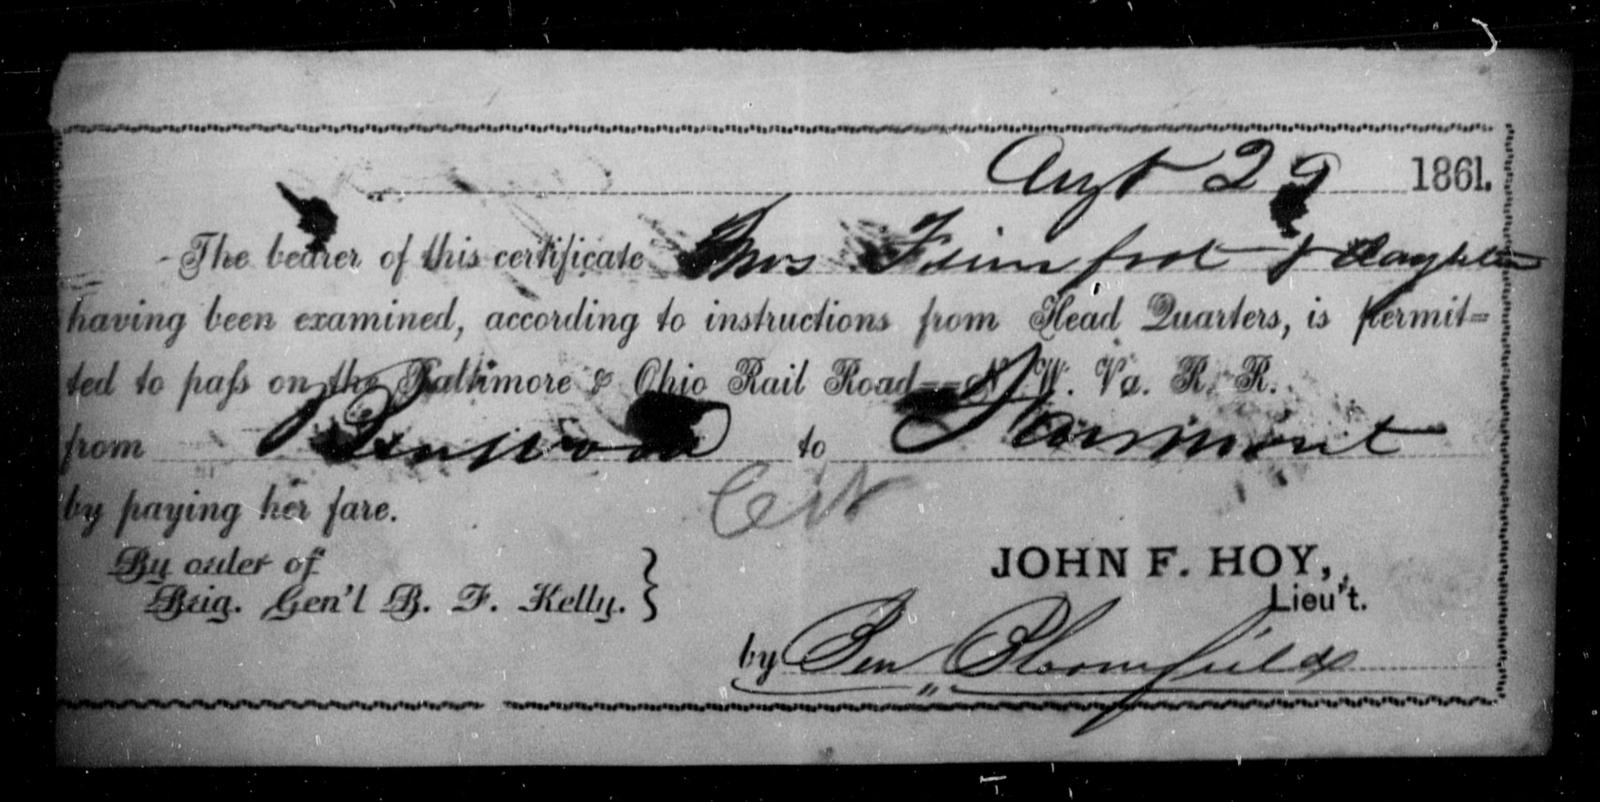 Firmfort, [Blank] - State: Ohio - Year: 1861